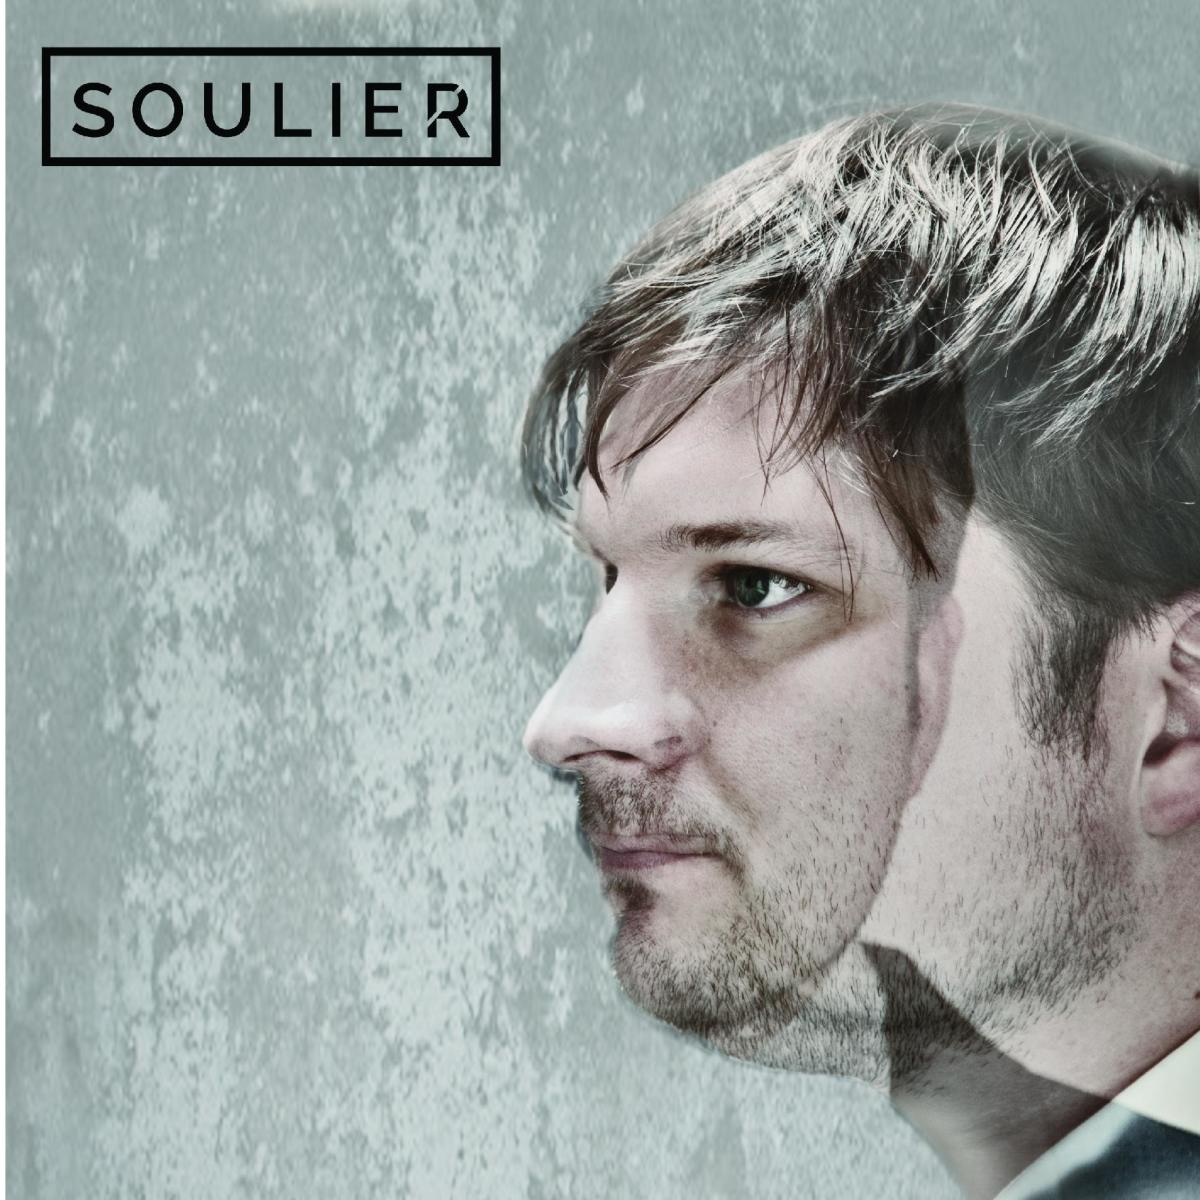 Soulier (Ryan Hall): Canadian Electronic Music Artist Profile